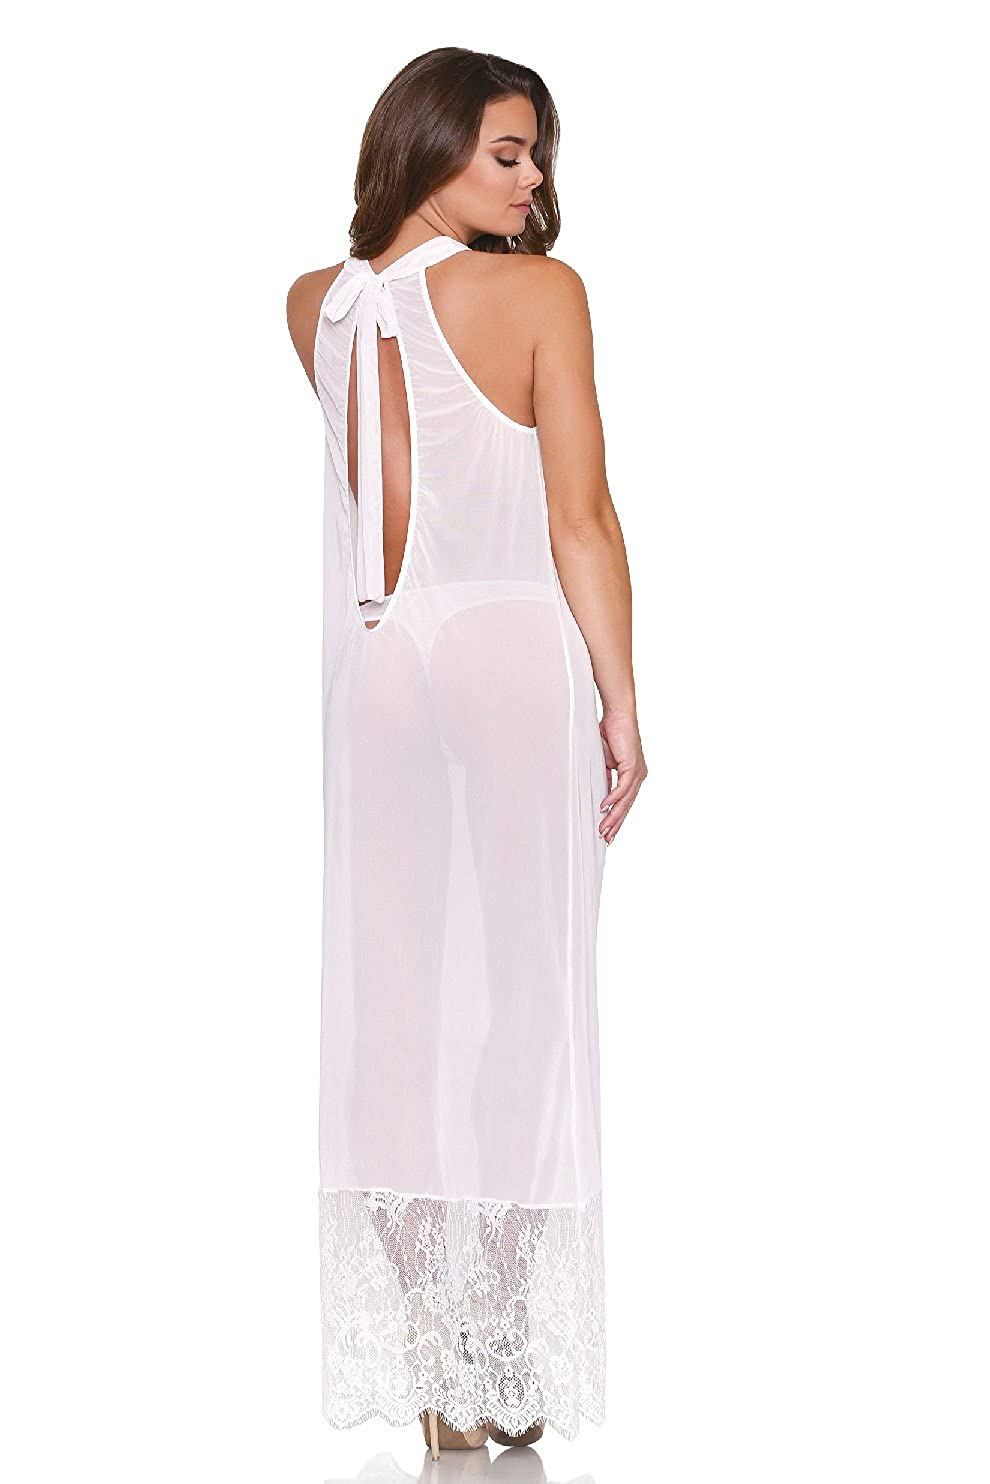 Amazon.com  Tease Women s Long Sheer White Halter Style Nightgown  Clothing bfb8535d9